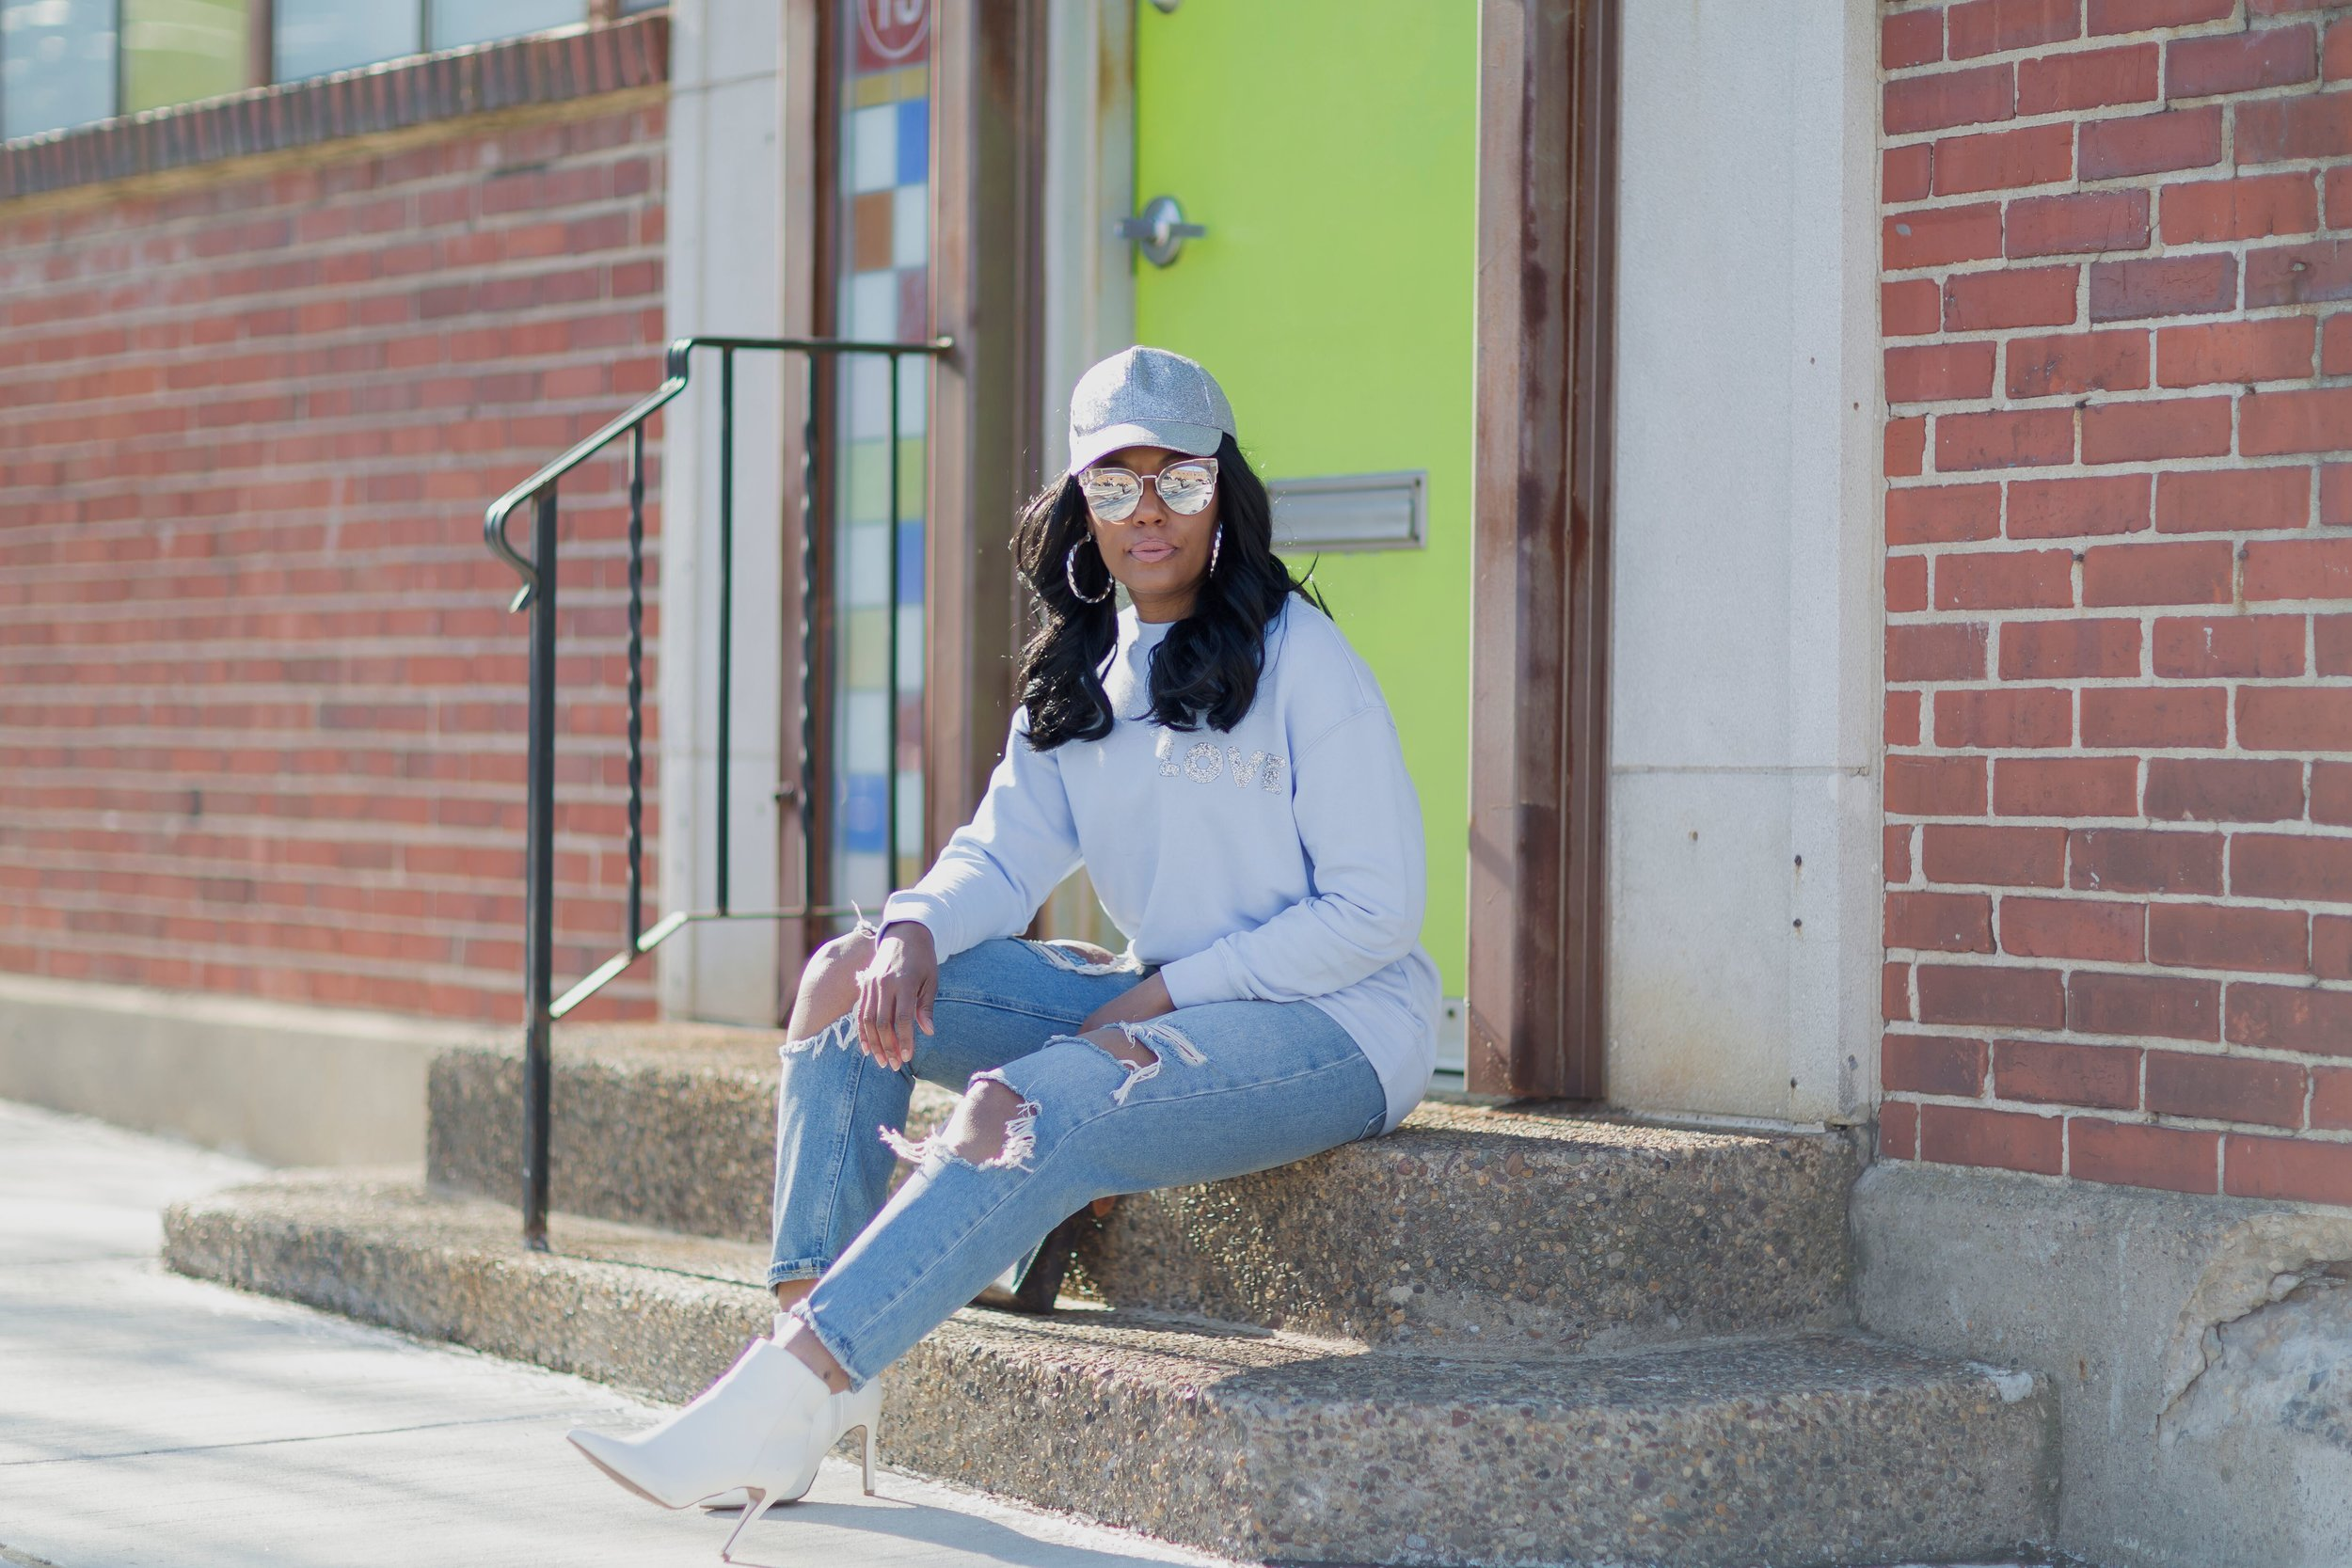 Sweatshirt(H&M) Alternative  here  | Boots( Forever21 ) | Jeans(Forever21) | Hat(H&M)